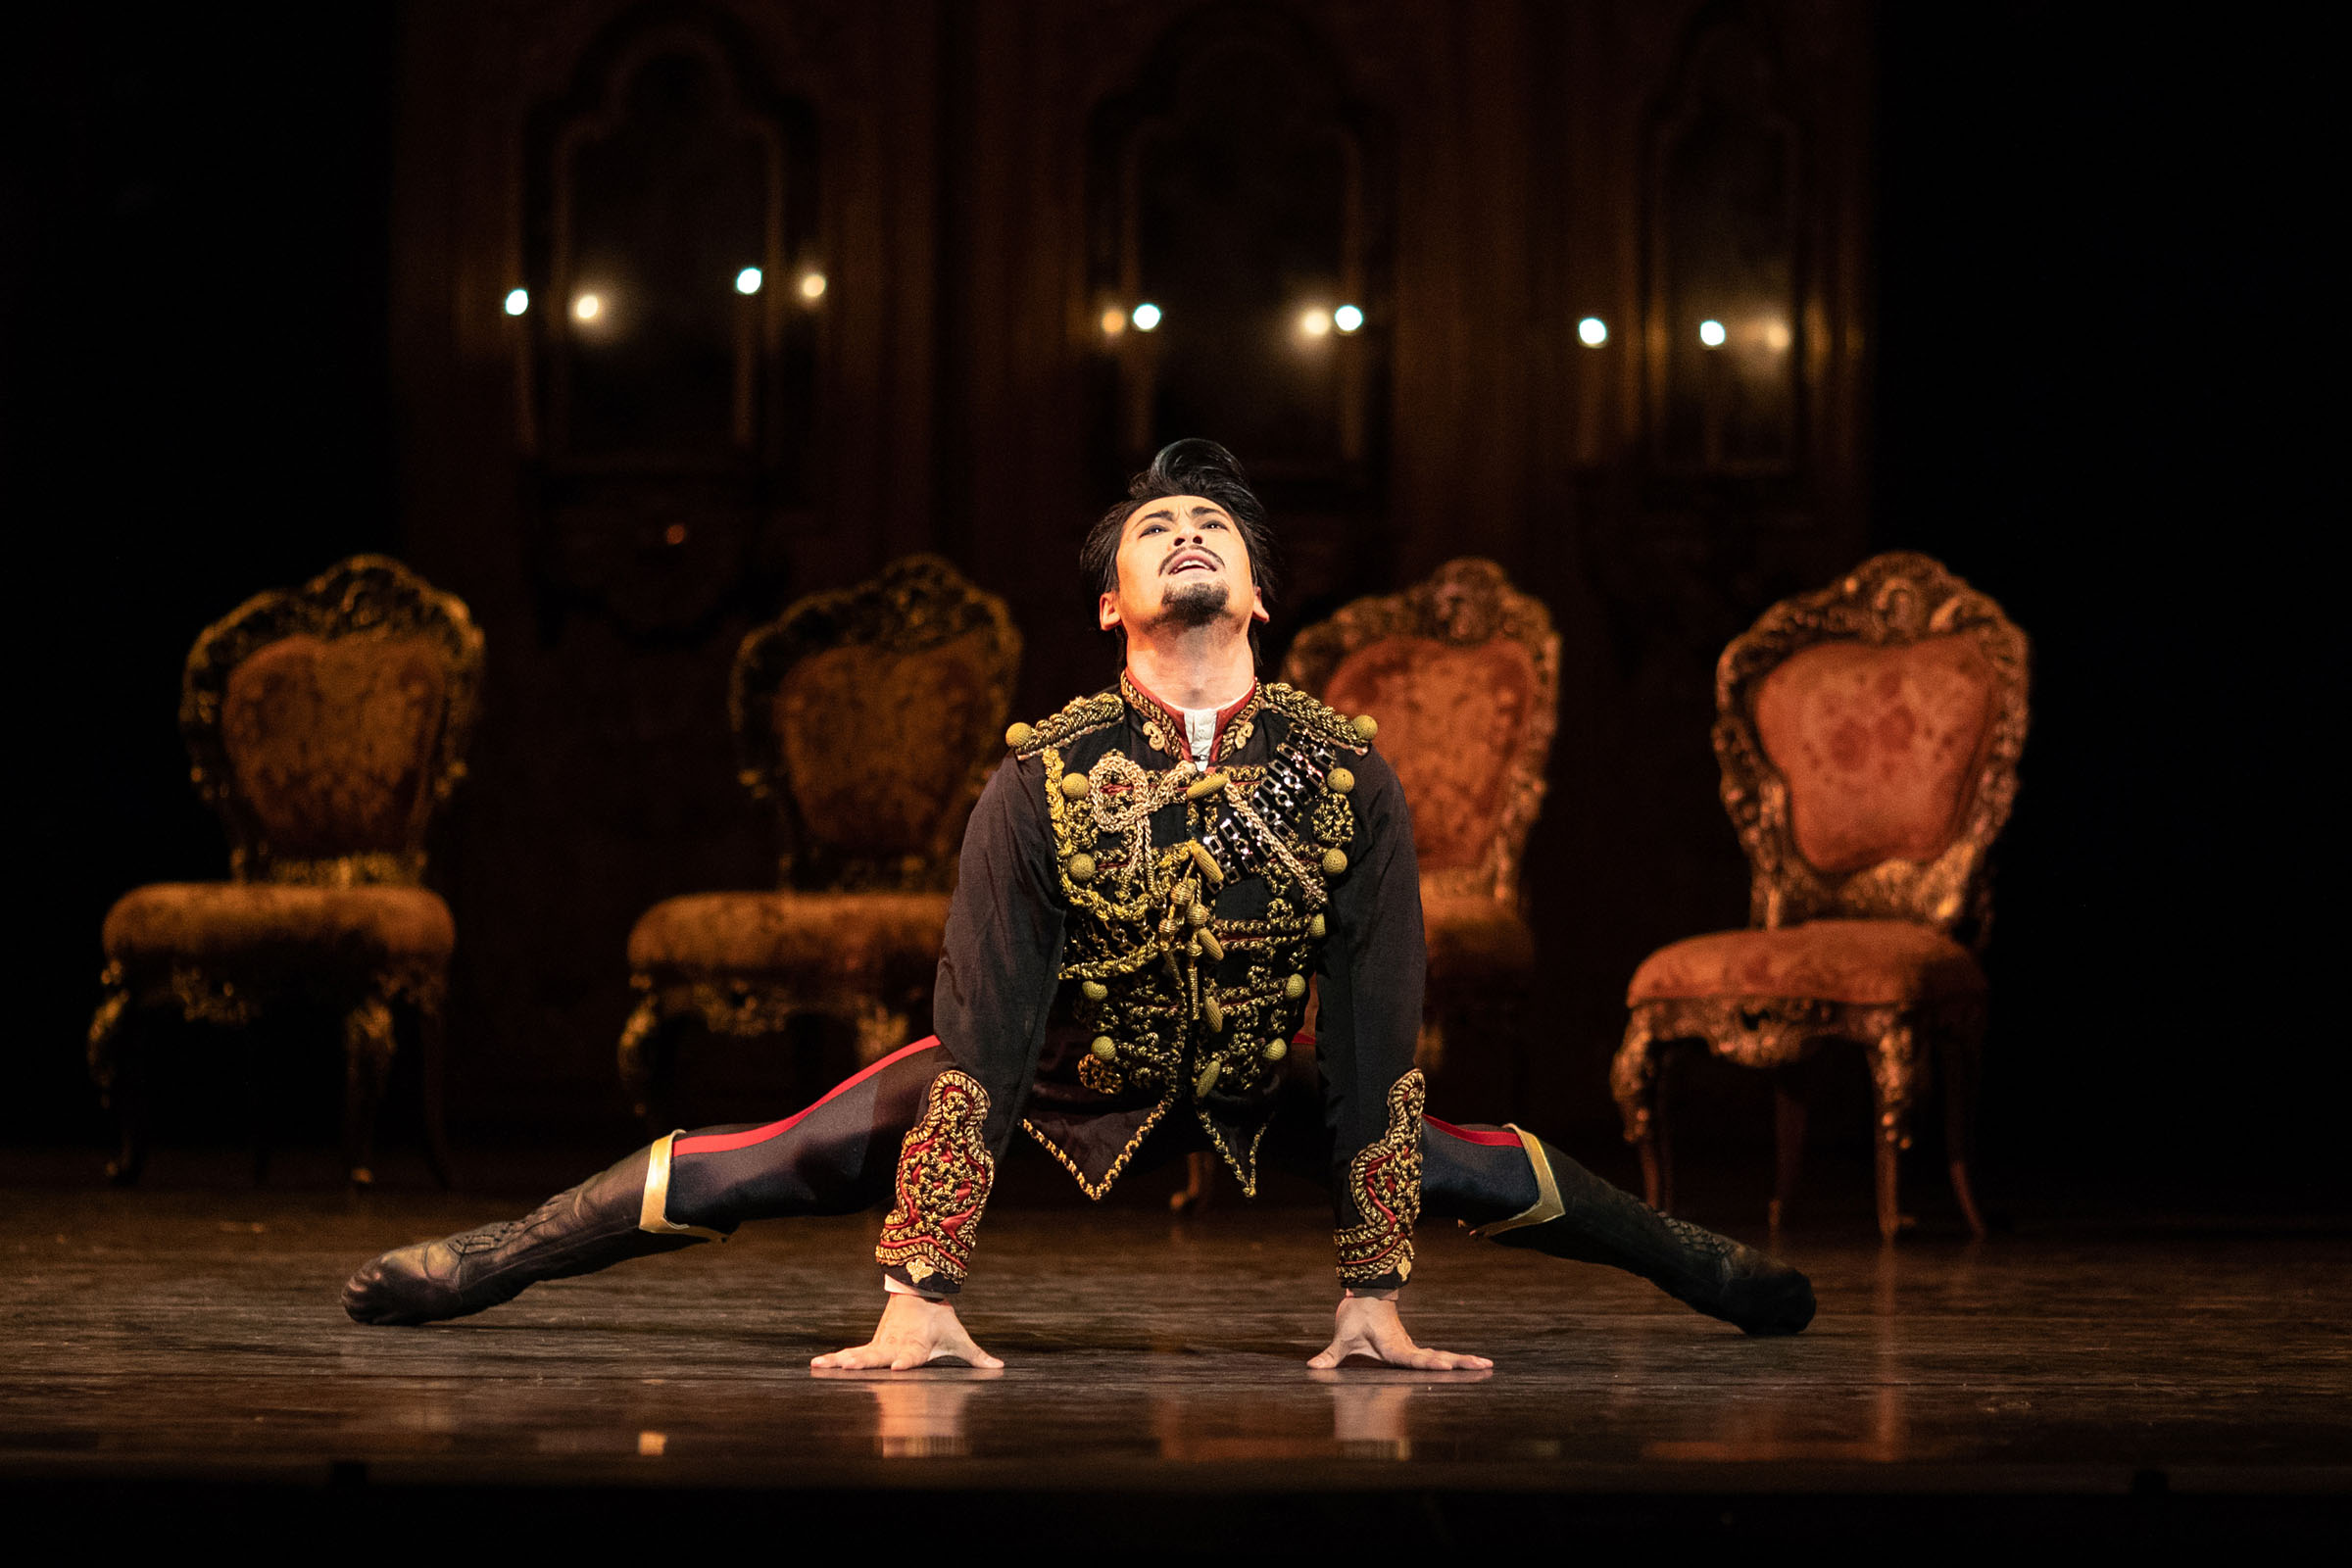 Ryoichi Hirano as Crown Prince Rudolf at the Royal Opera House